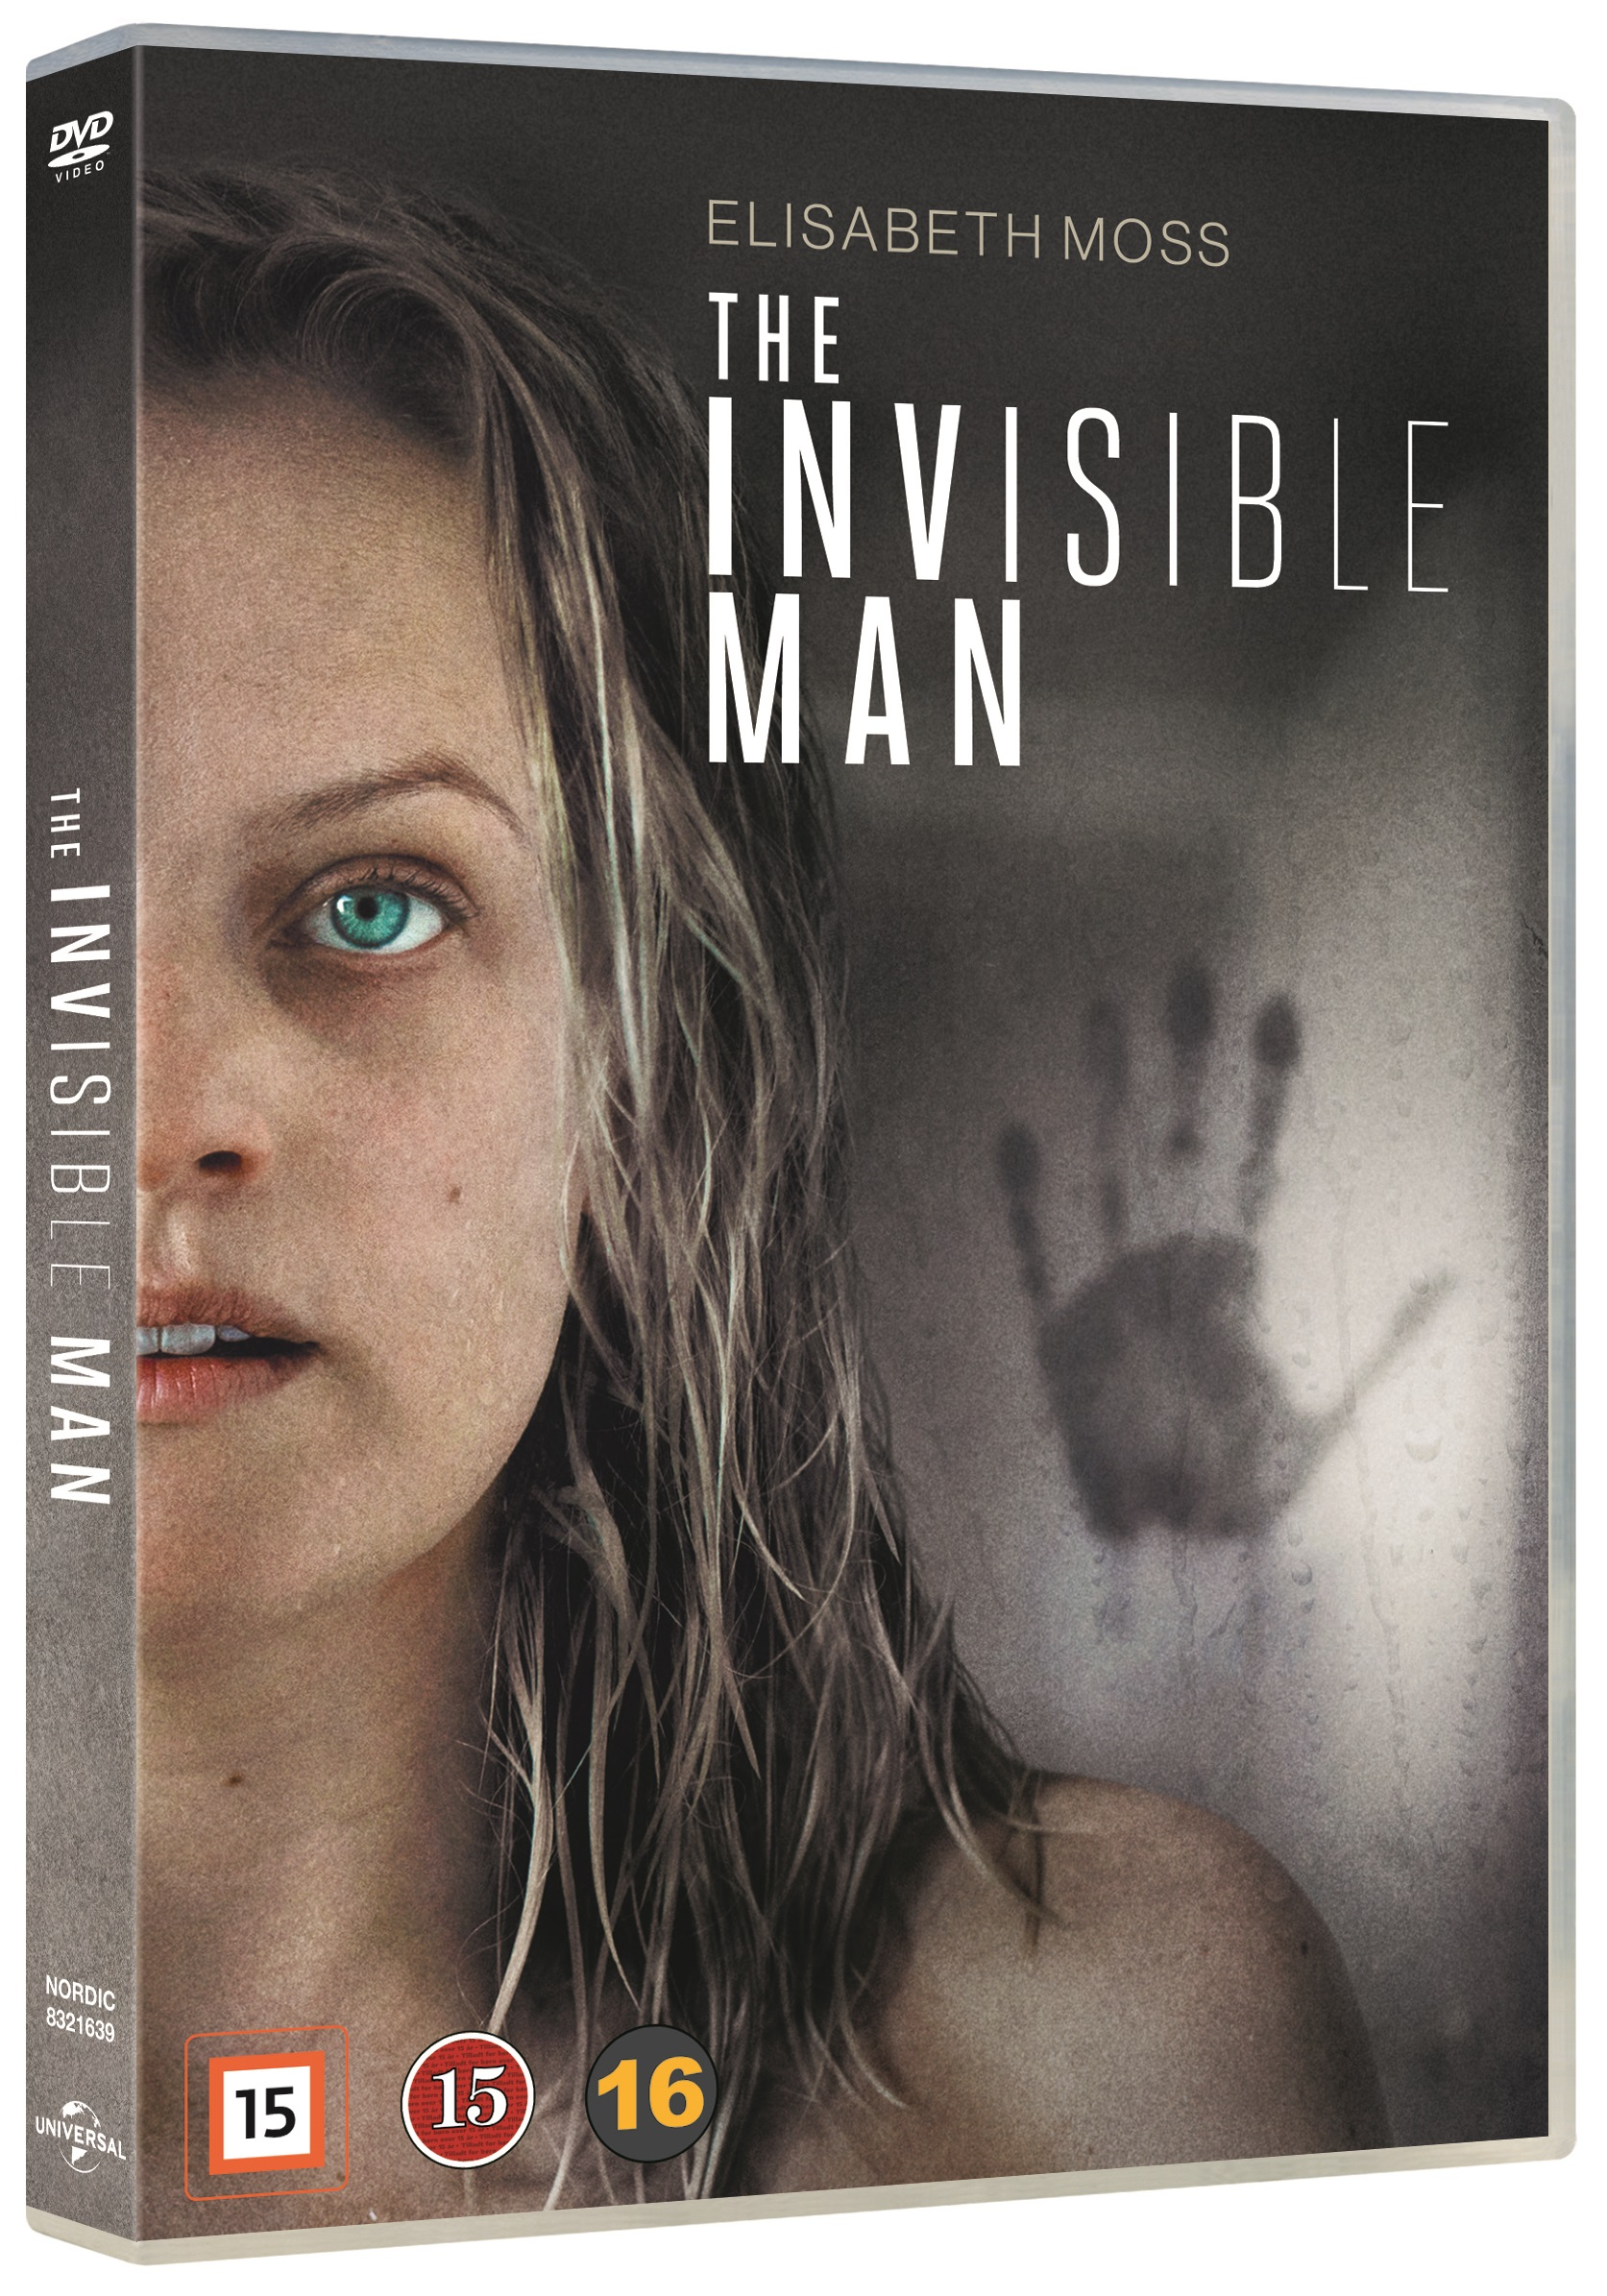 The Invisible Man (2020) -  - Film -  - 5053083216399 - 20/7-2020